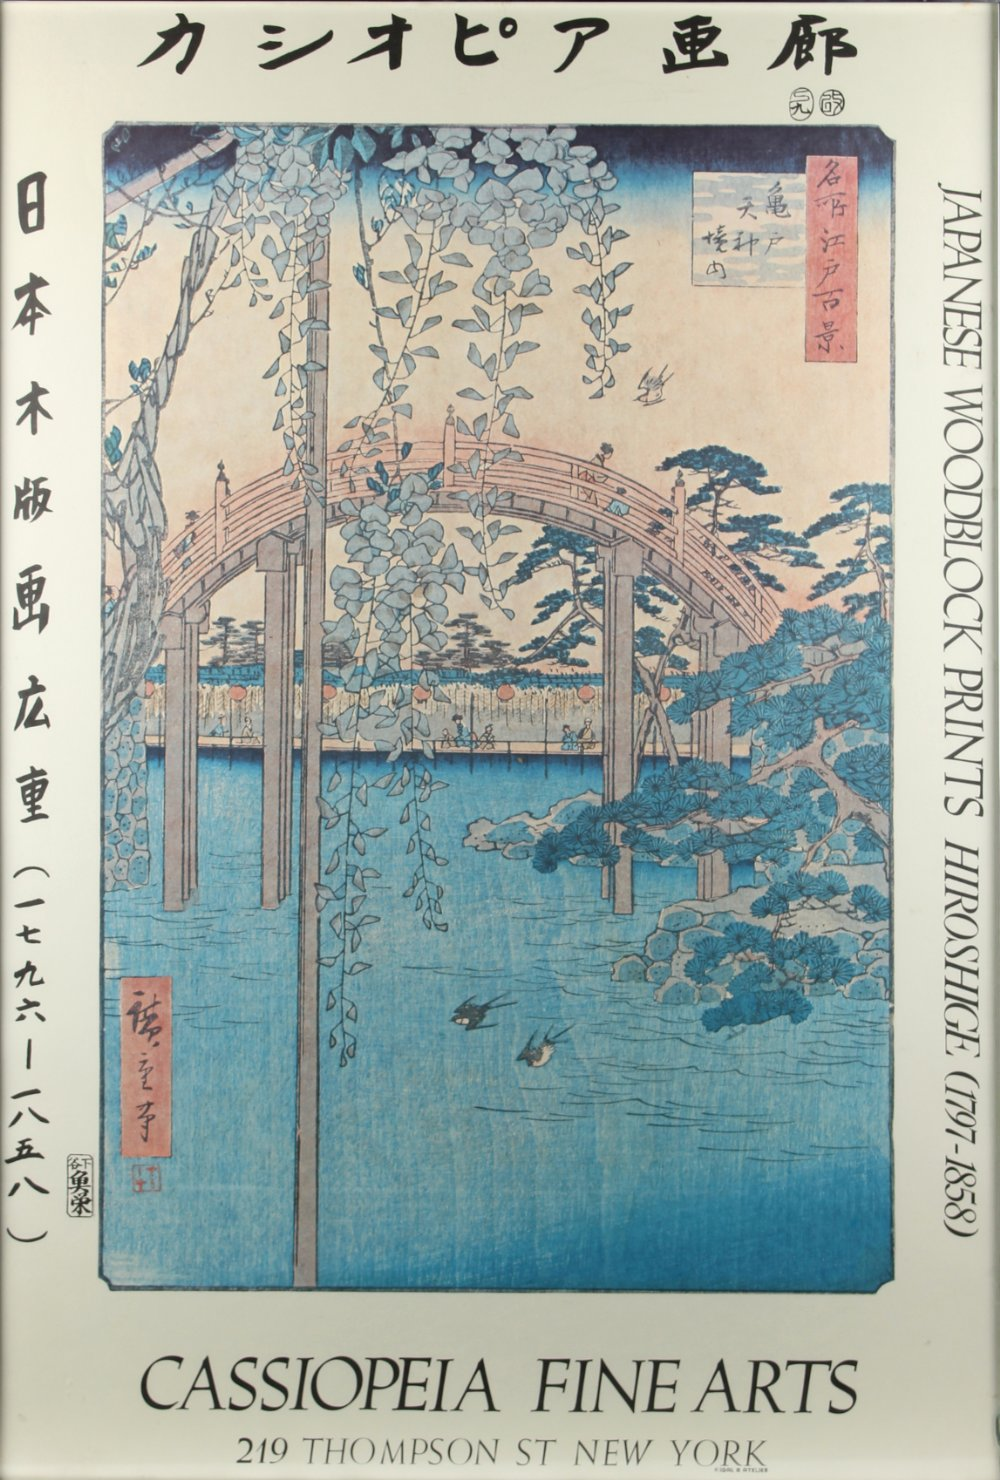 A poster for an exhibition of Japanese Woodblock Prints by Hiroshige, at Cassiopeia Fine Arts, New